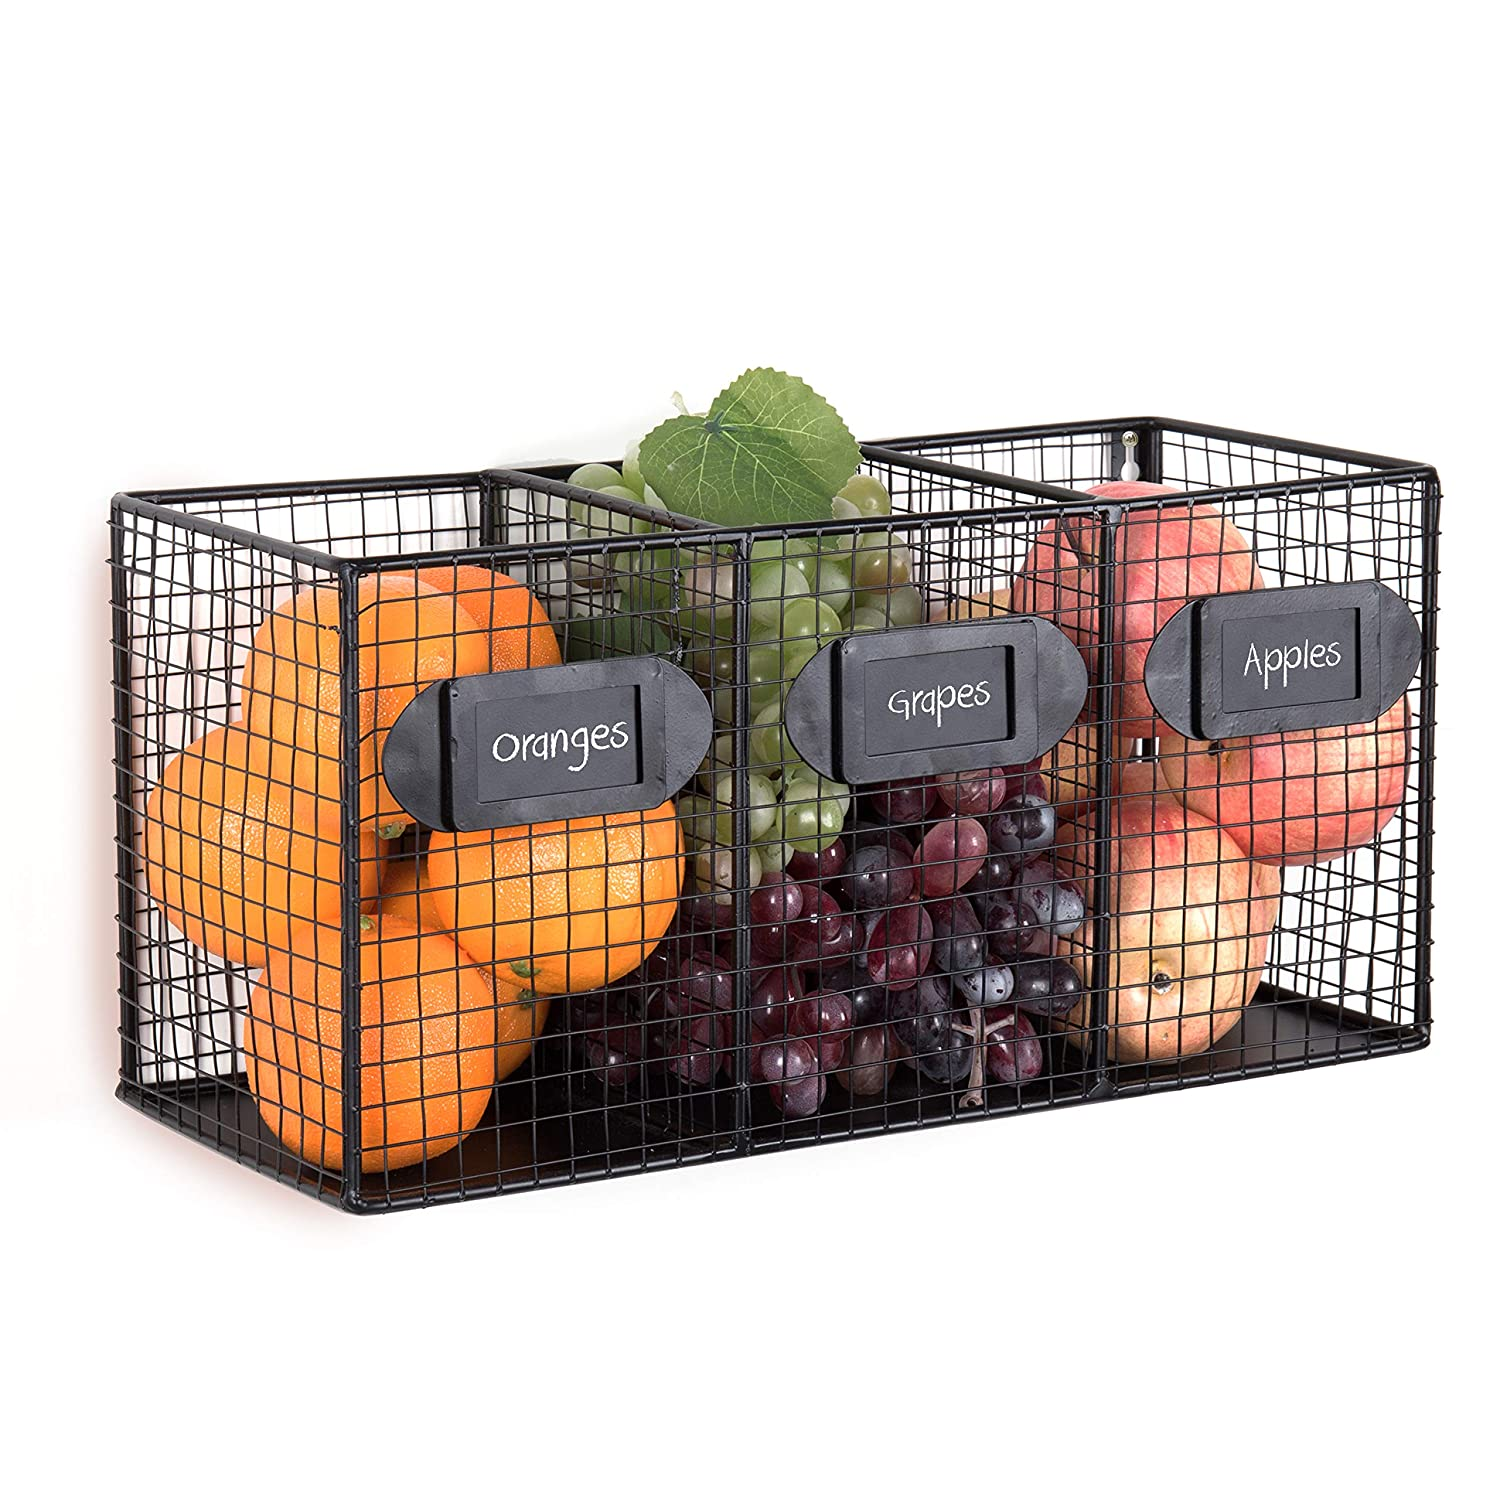 Free Standing Black Metal Wire 3 Bin Kitchen Pantry Organizer Basket, Mail Sorter w/Chalkboard Labels MyGift